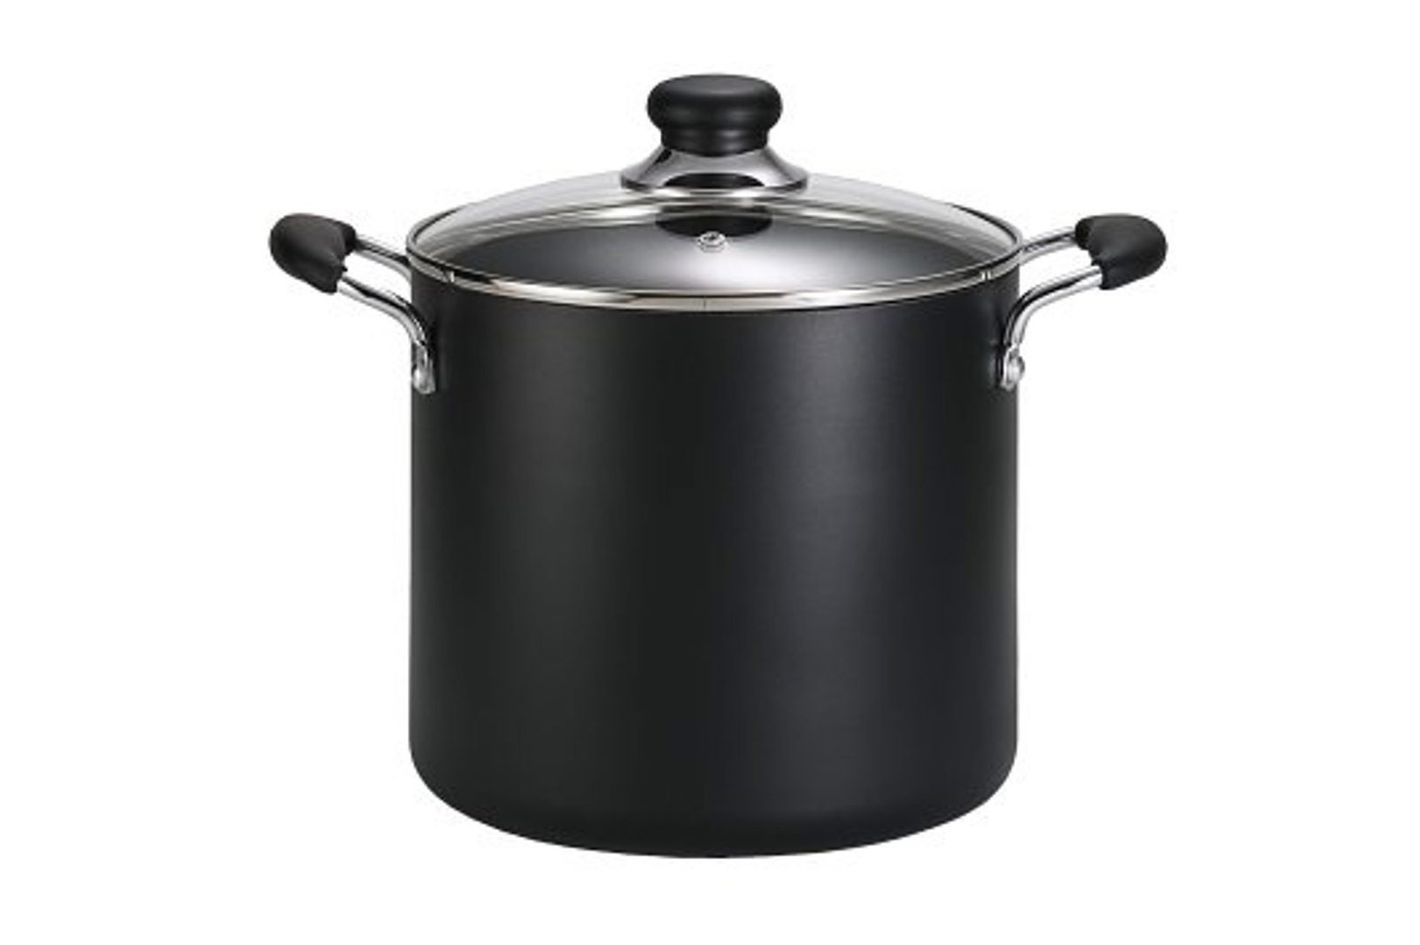 T-fal A92279 Specialty Total Nonstick Dishwasher Safe Oven Safe Stockpot Cookware, 8-Quart, Black